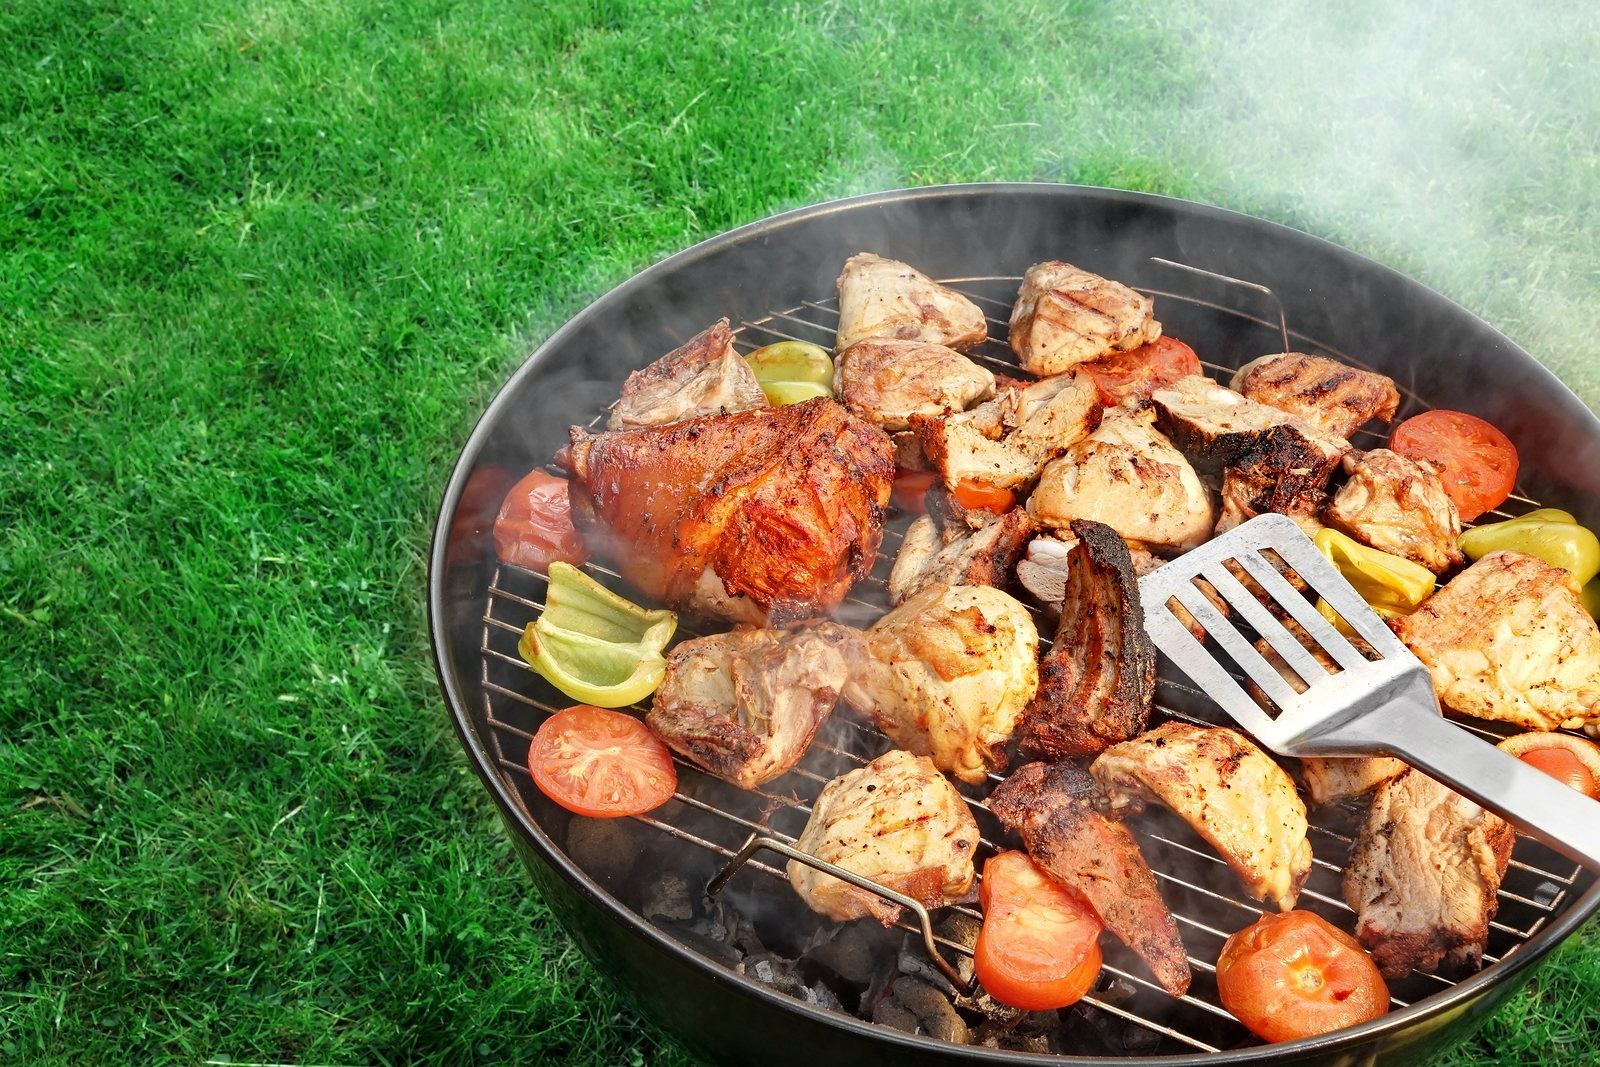 bigstock-Bbq-Assorted-Meat-And-Vegetabl-93000839